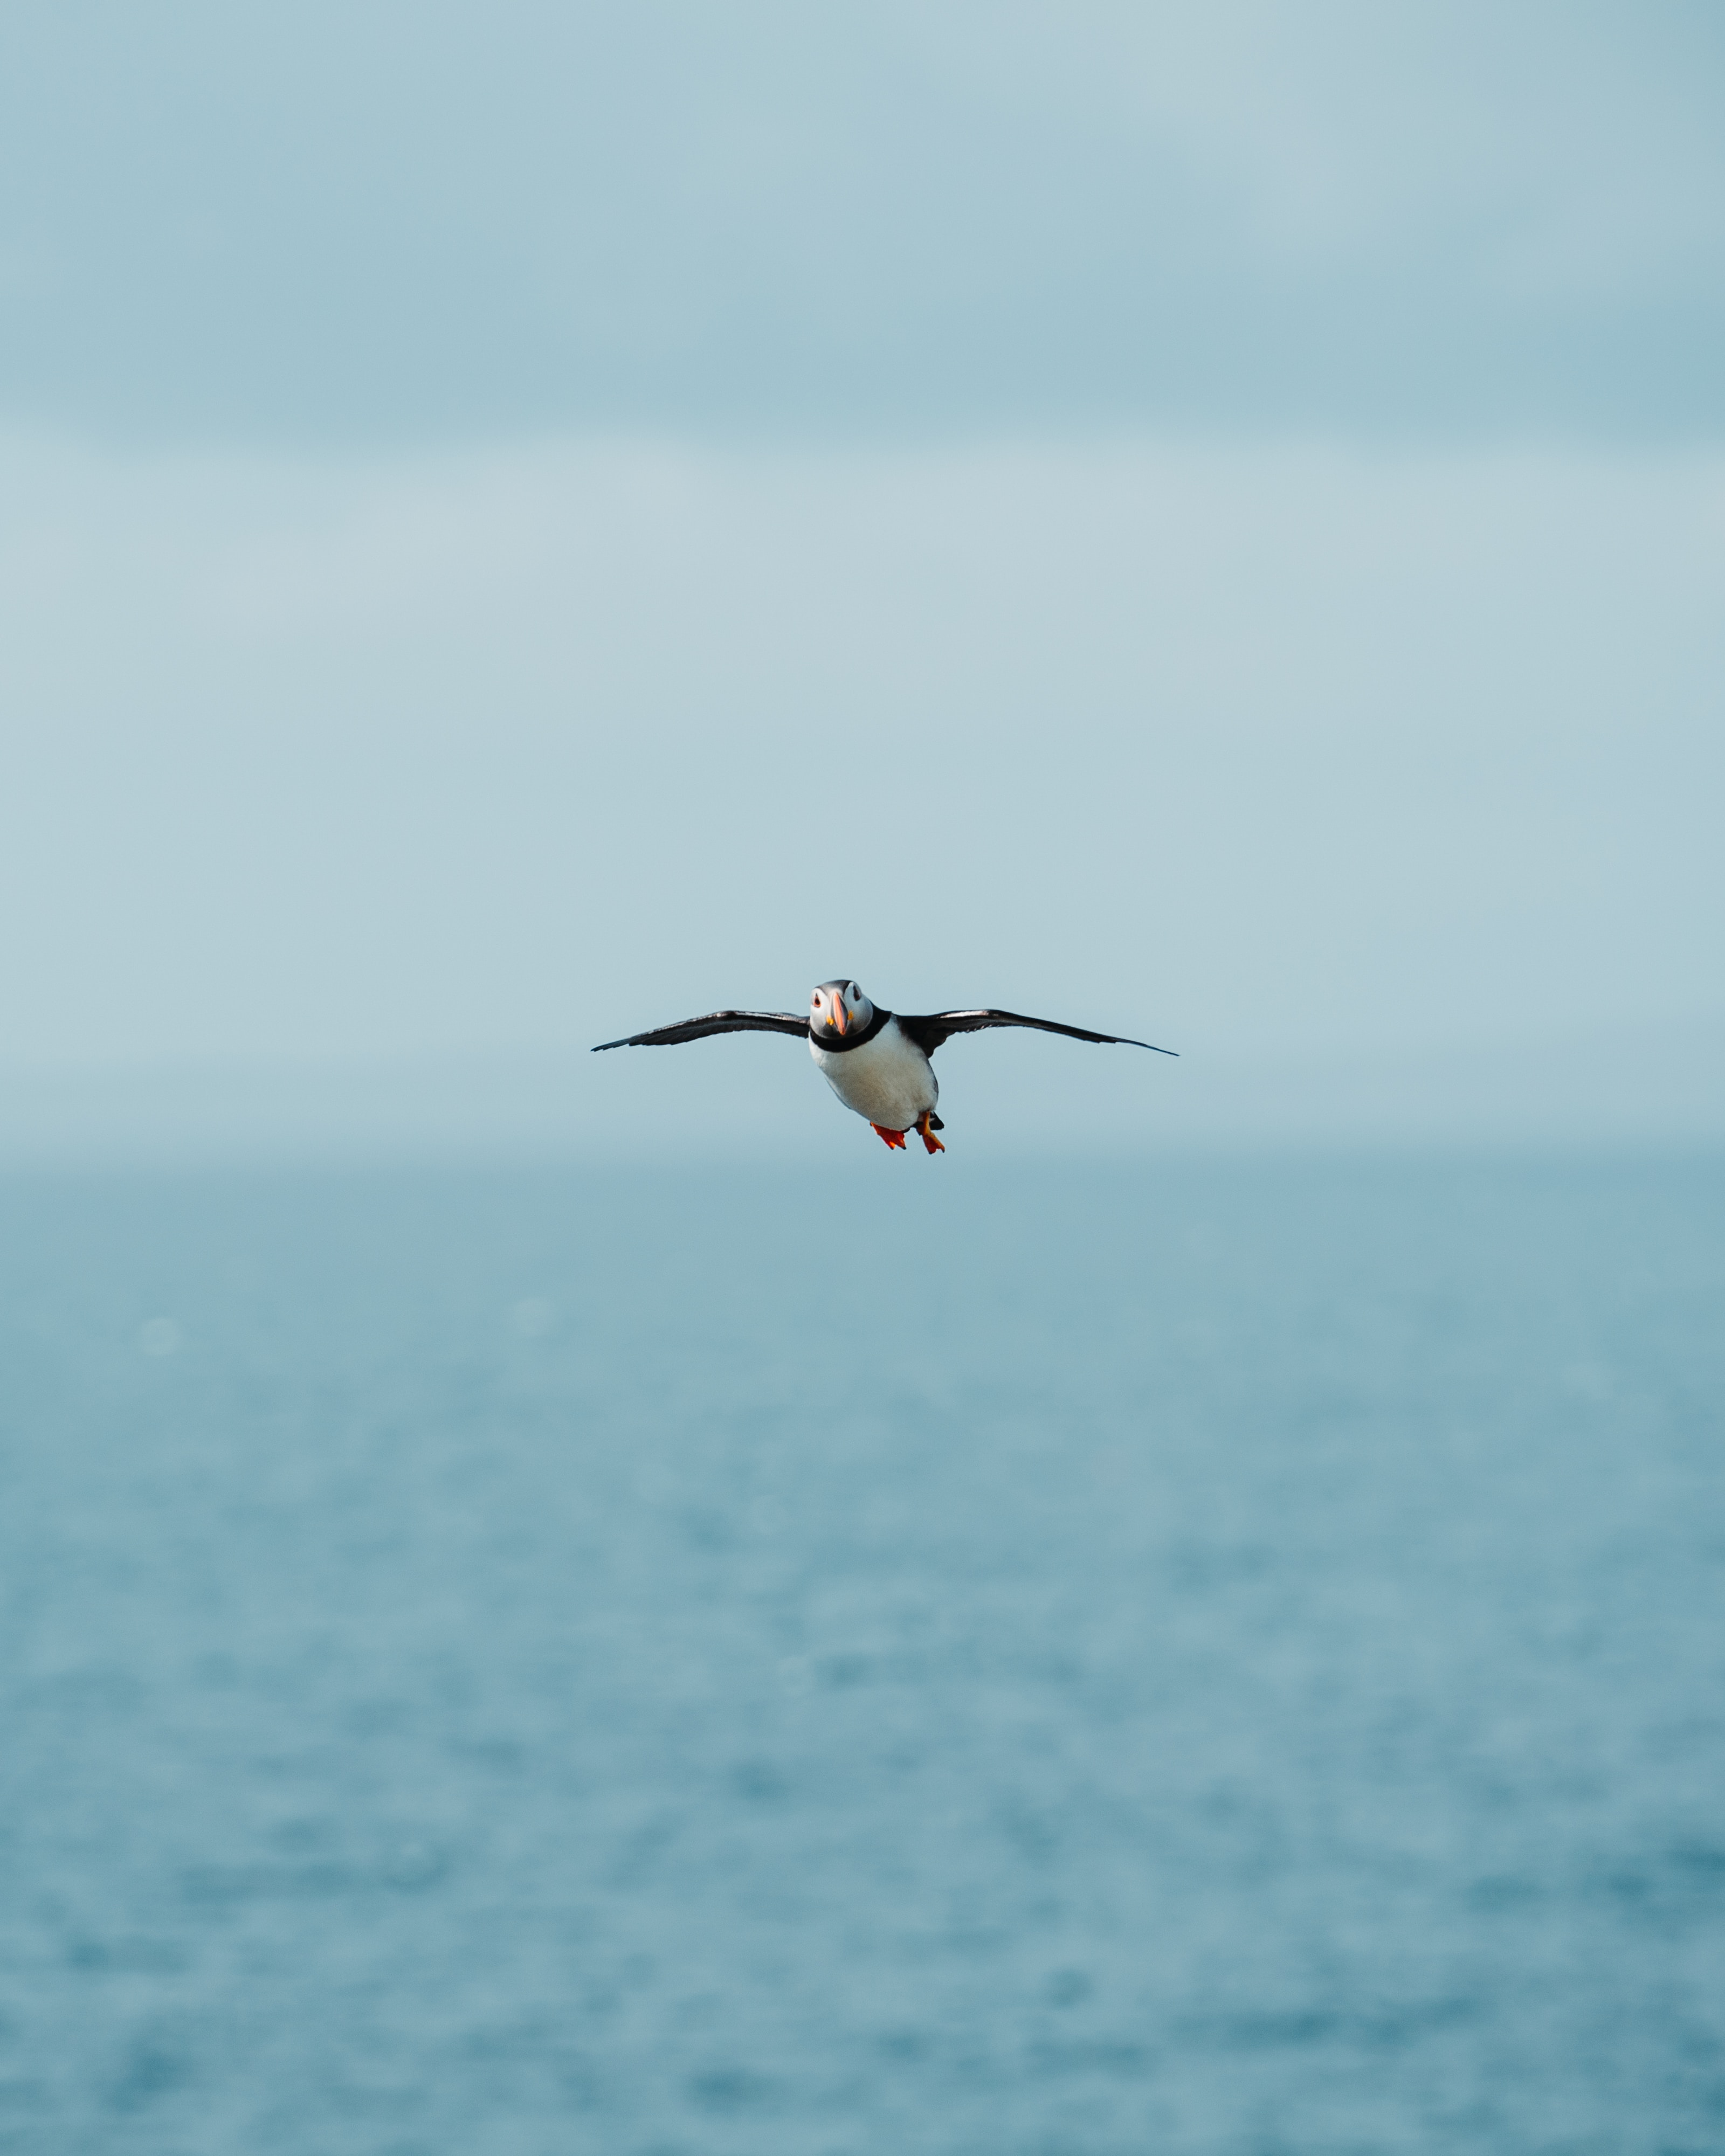 87157 download wallpaper Animals, Gull, Seagull, Bird, Flight, Sea, Wings screensavers and pictures for free